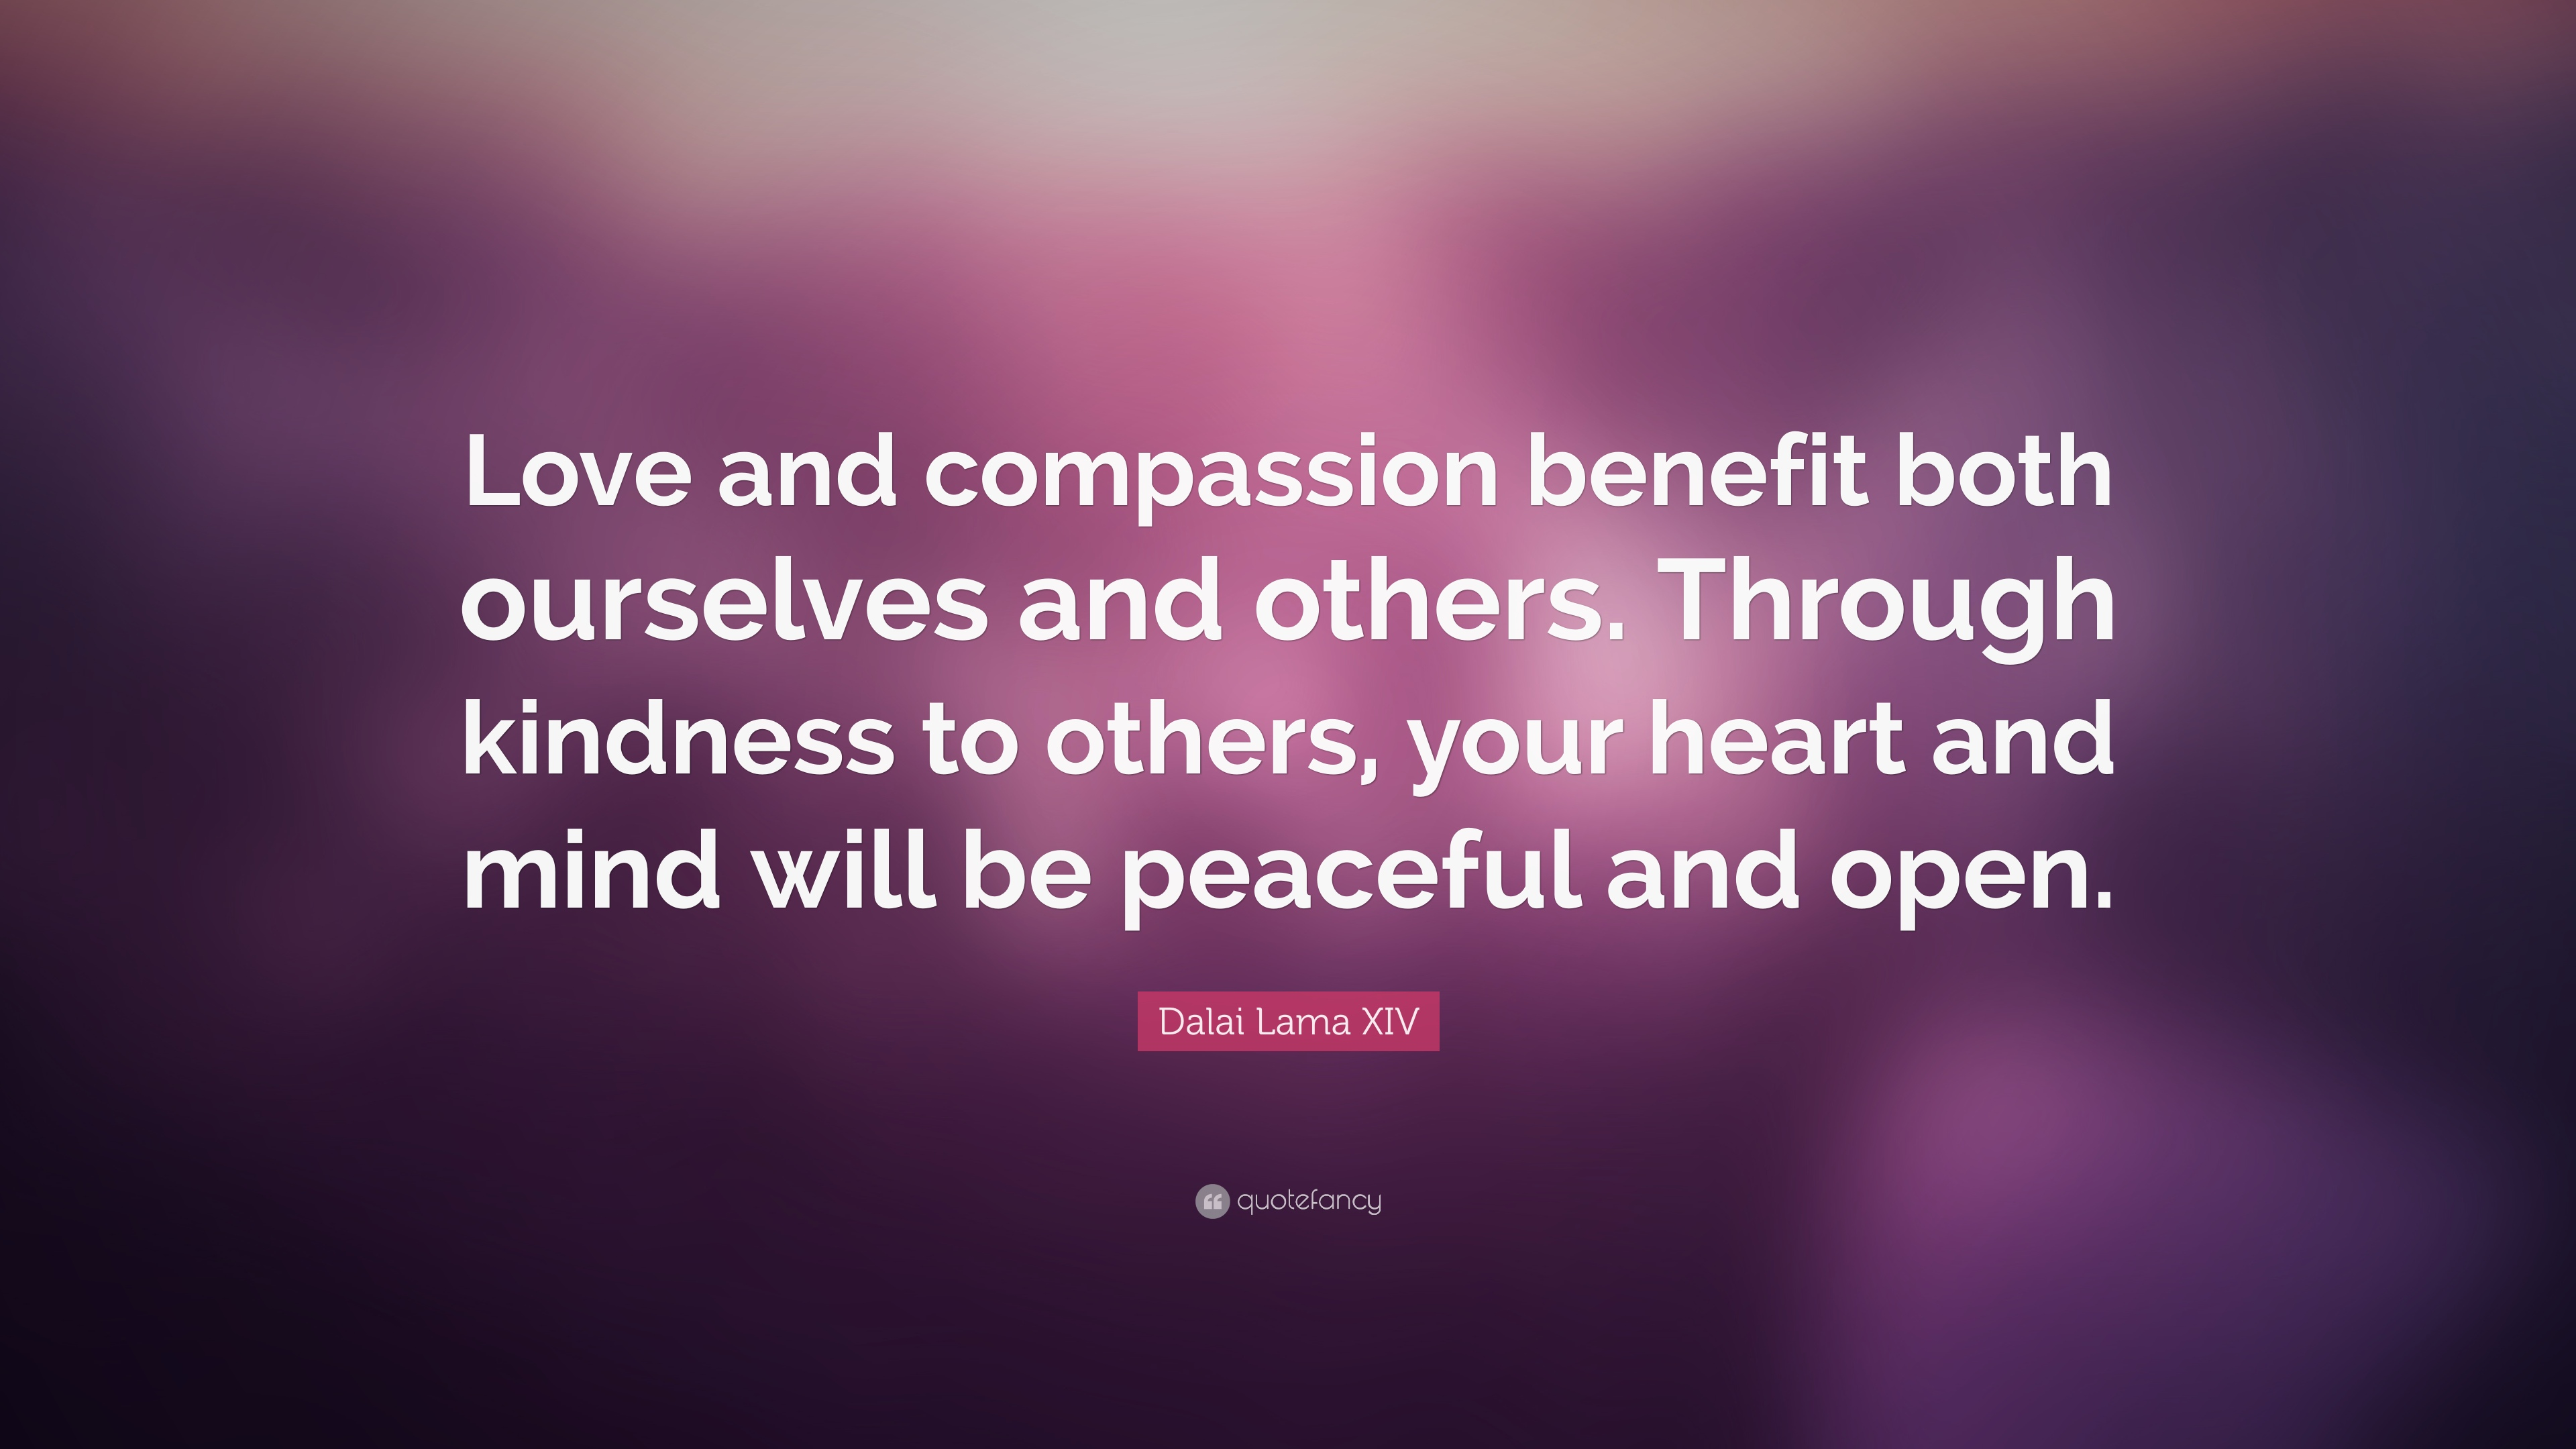 dalai lama xiv quote love and compassion benefit both ourselves and others through